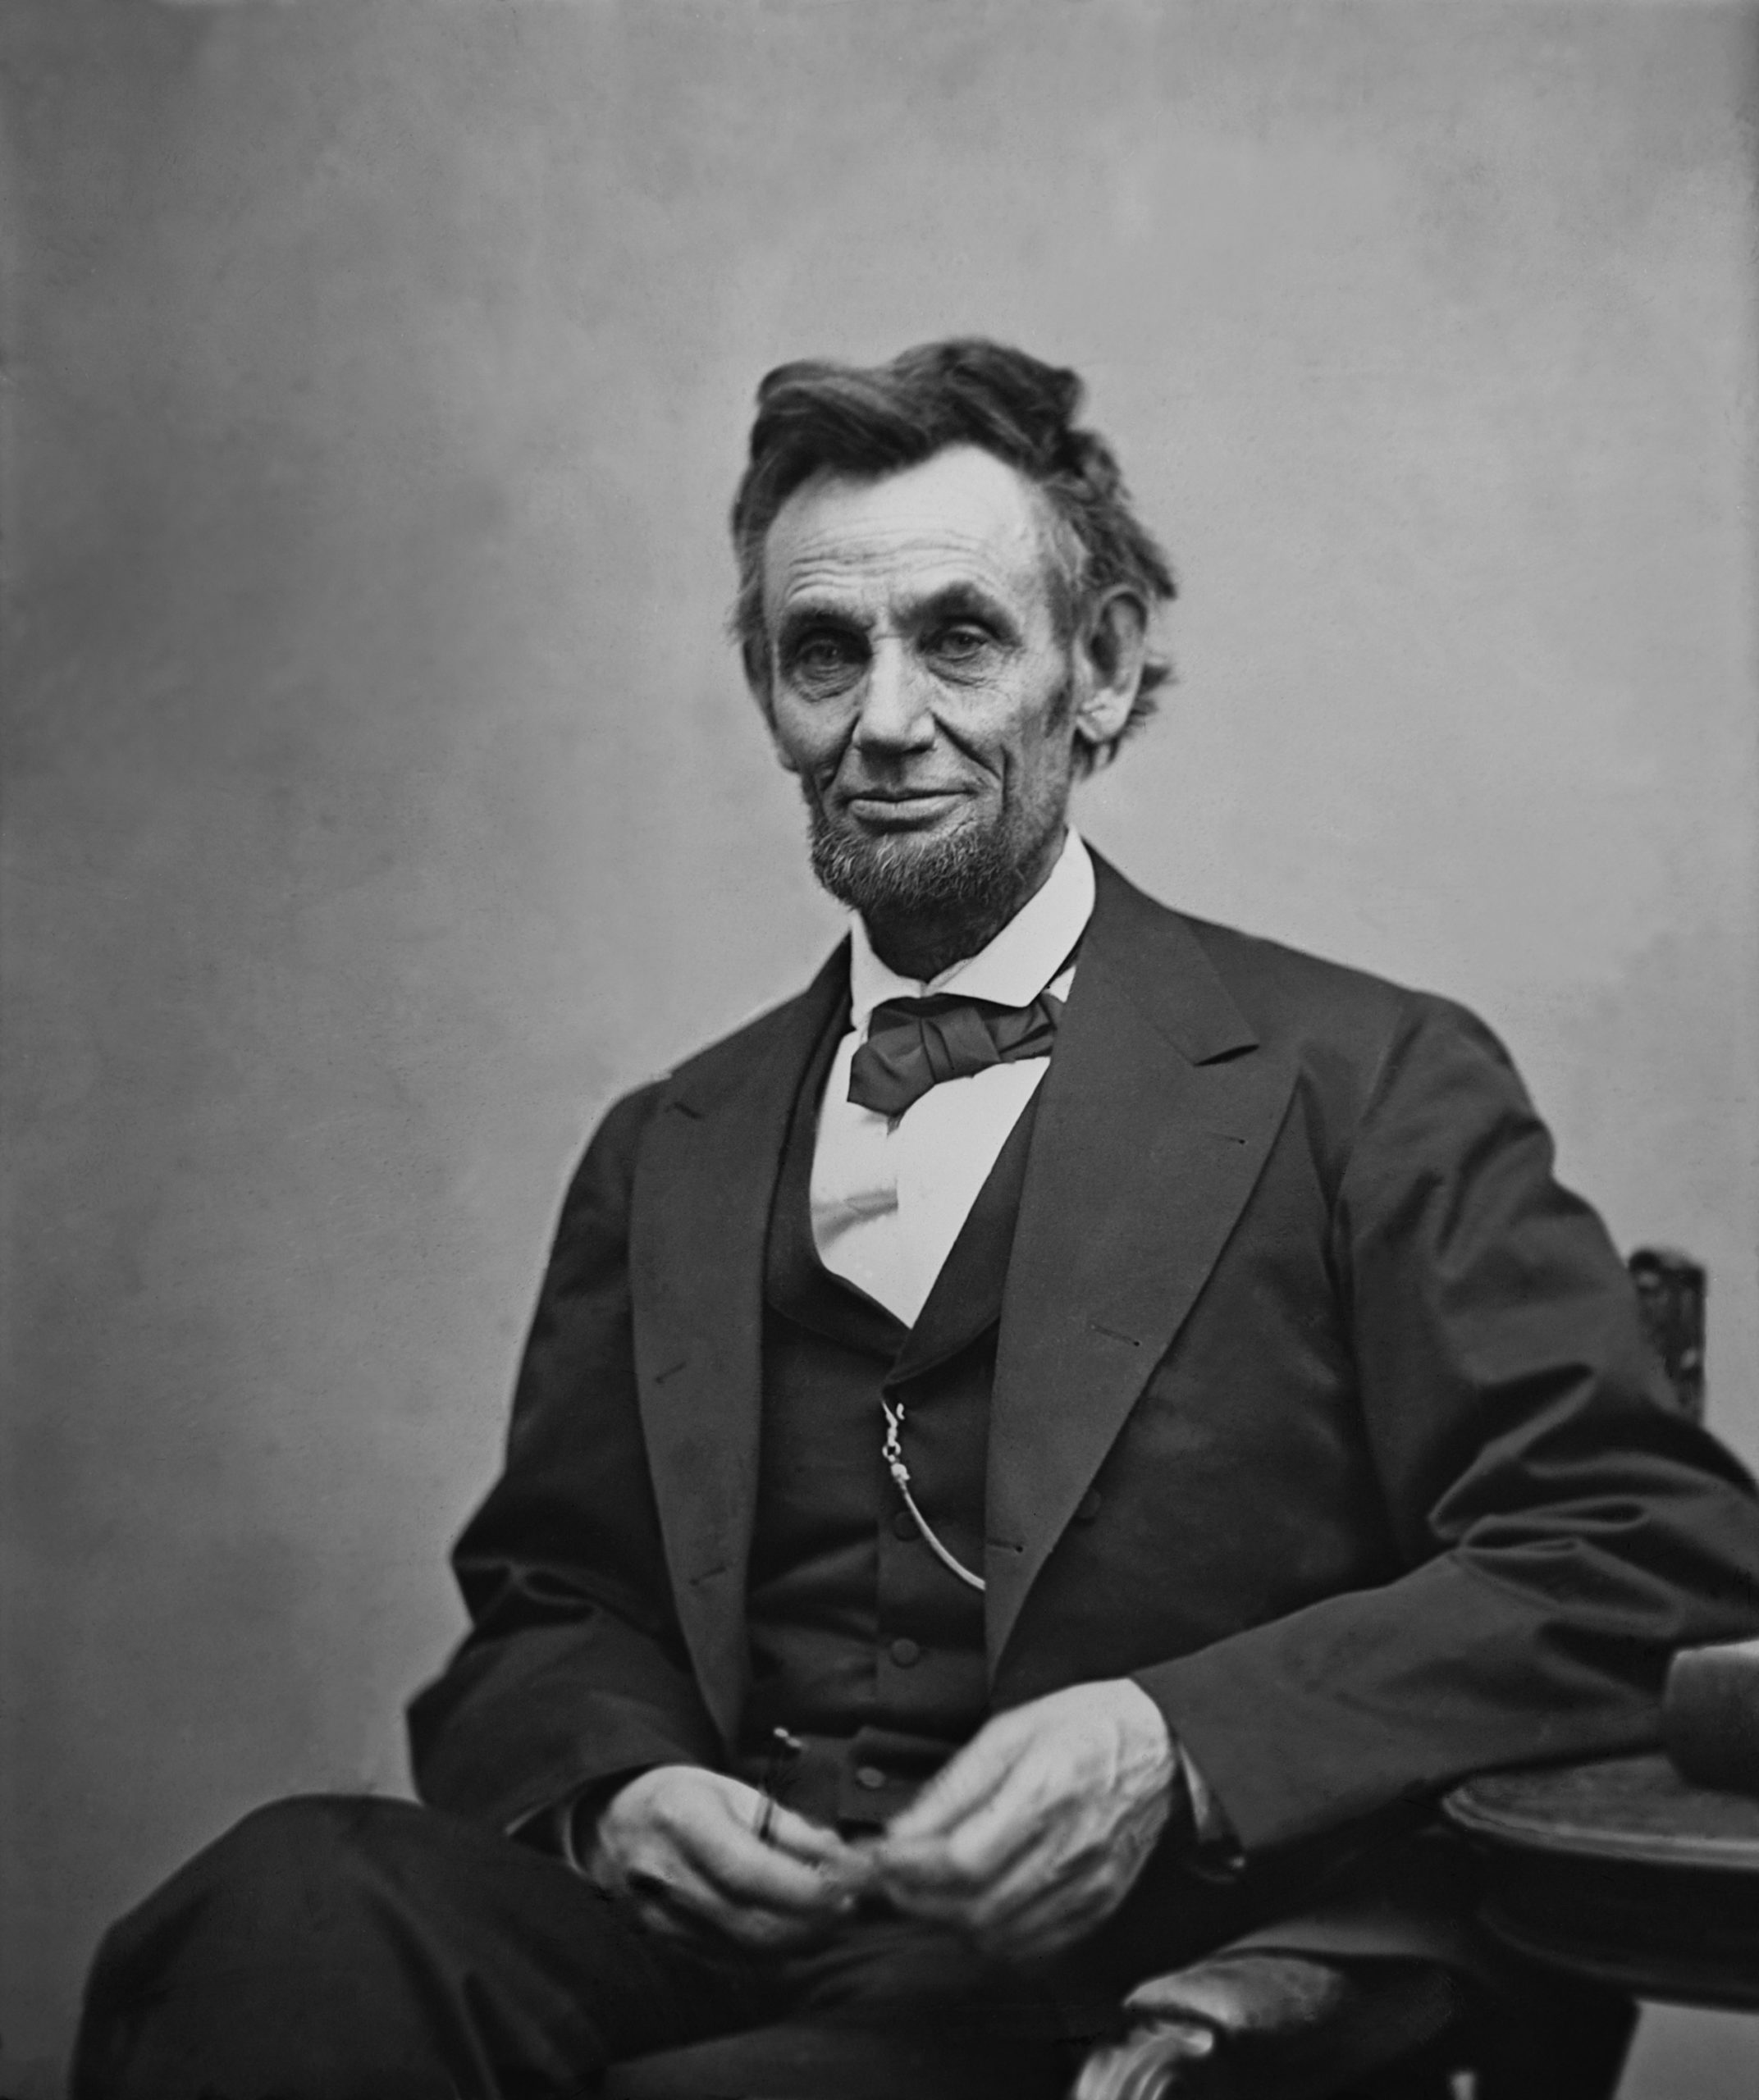 He was an American statesman and lawyer who served as the 16th president of the United States from 1861 to 1865. He led the nation through the American Civil War and the first Republican president.